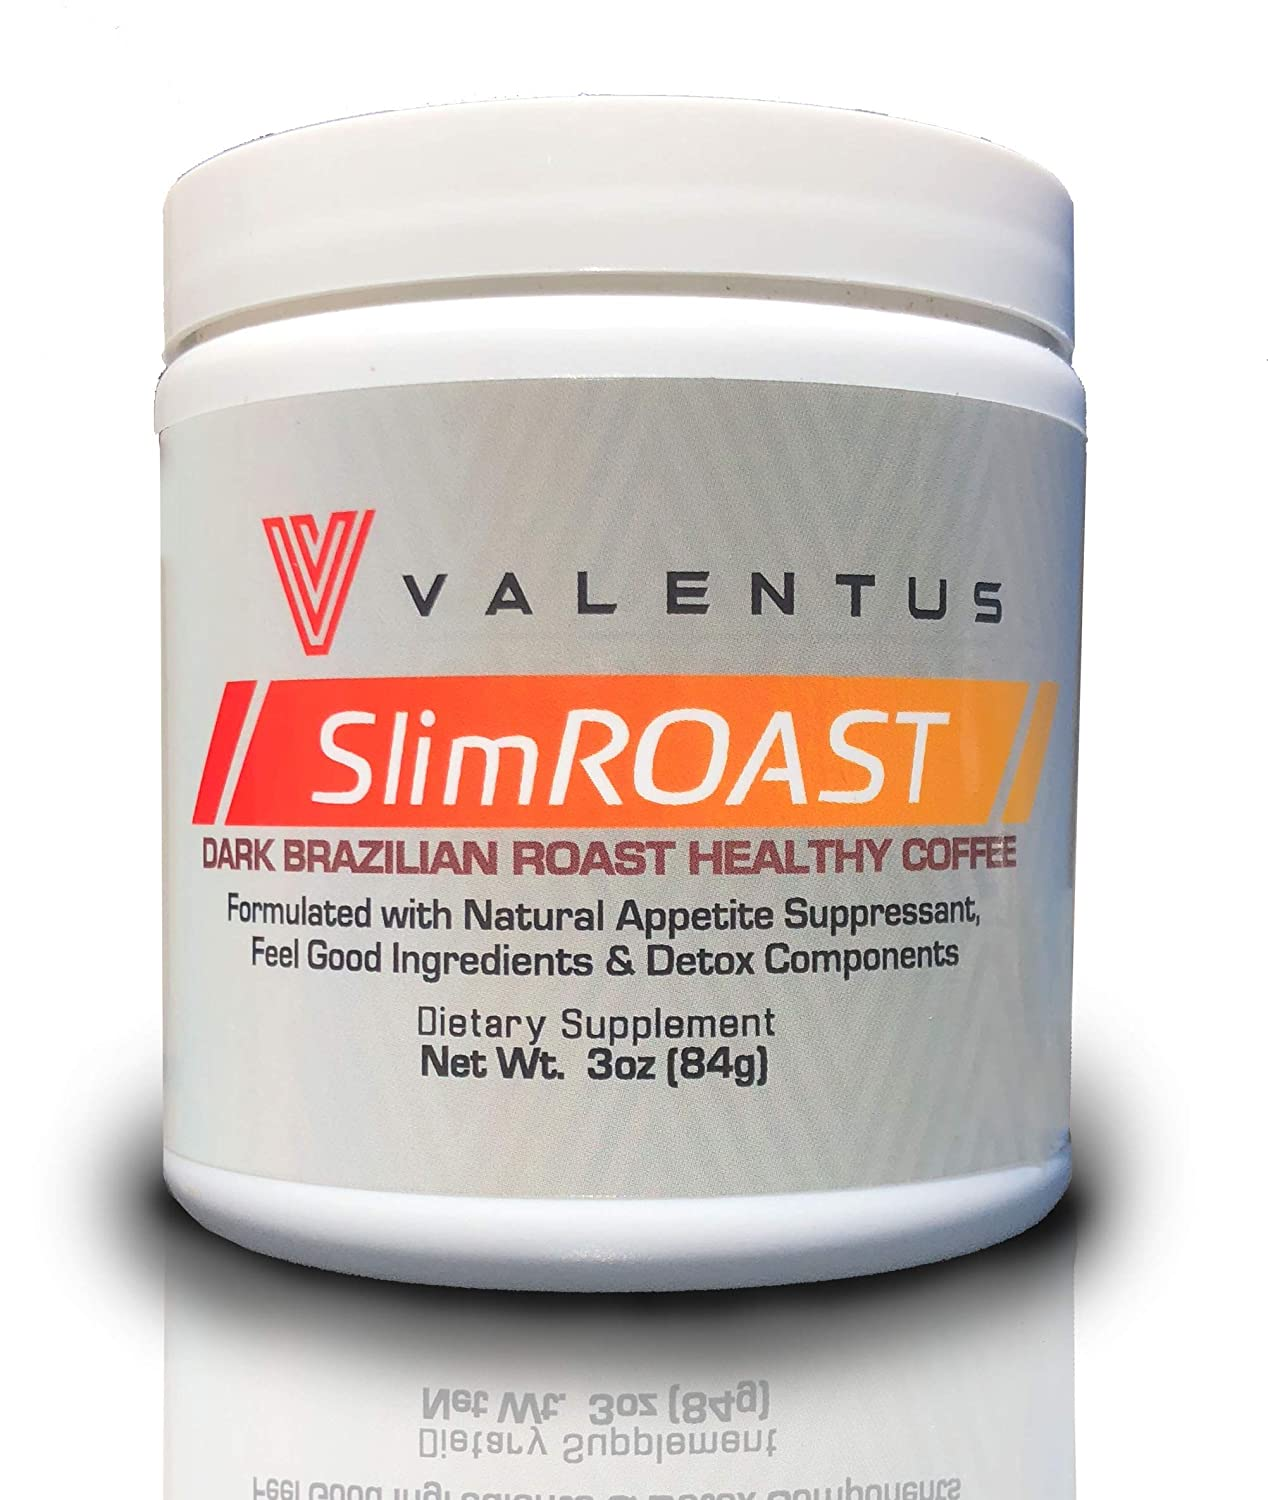 B01JH12QO0 Valentus Slim ROAST Brazilian Dark Roast Coffee 3 Oz. | 24 Servings 81GxavrQ7LL